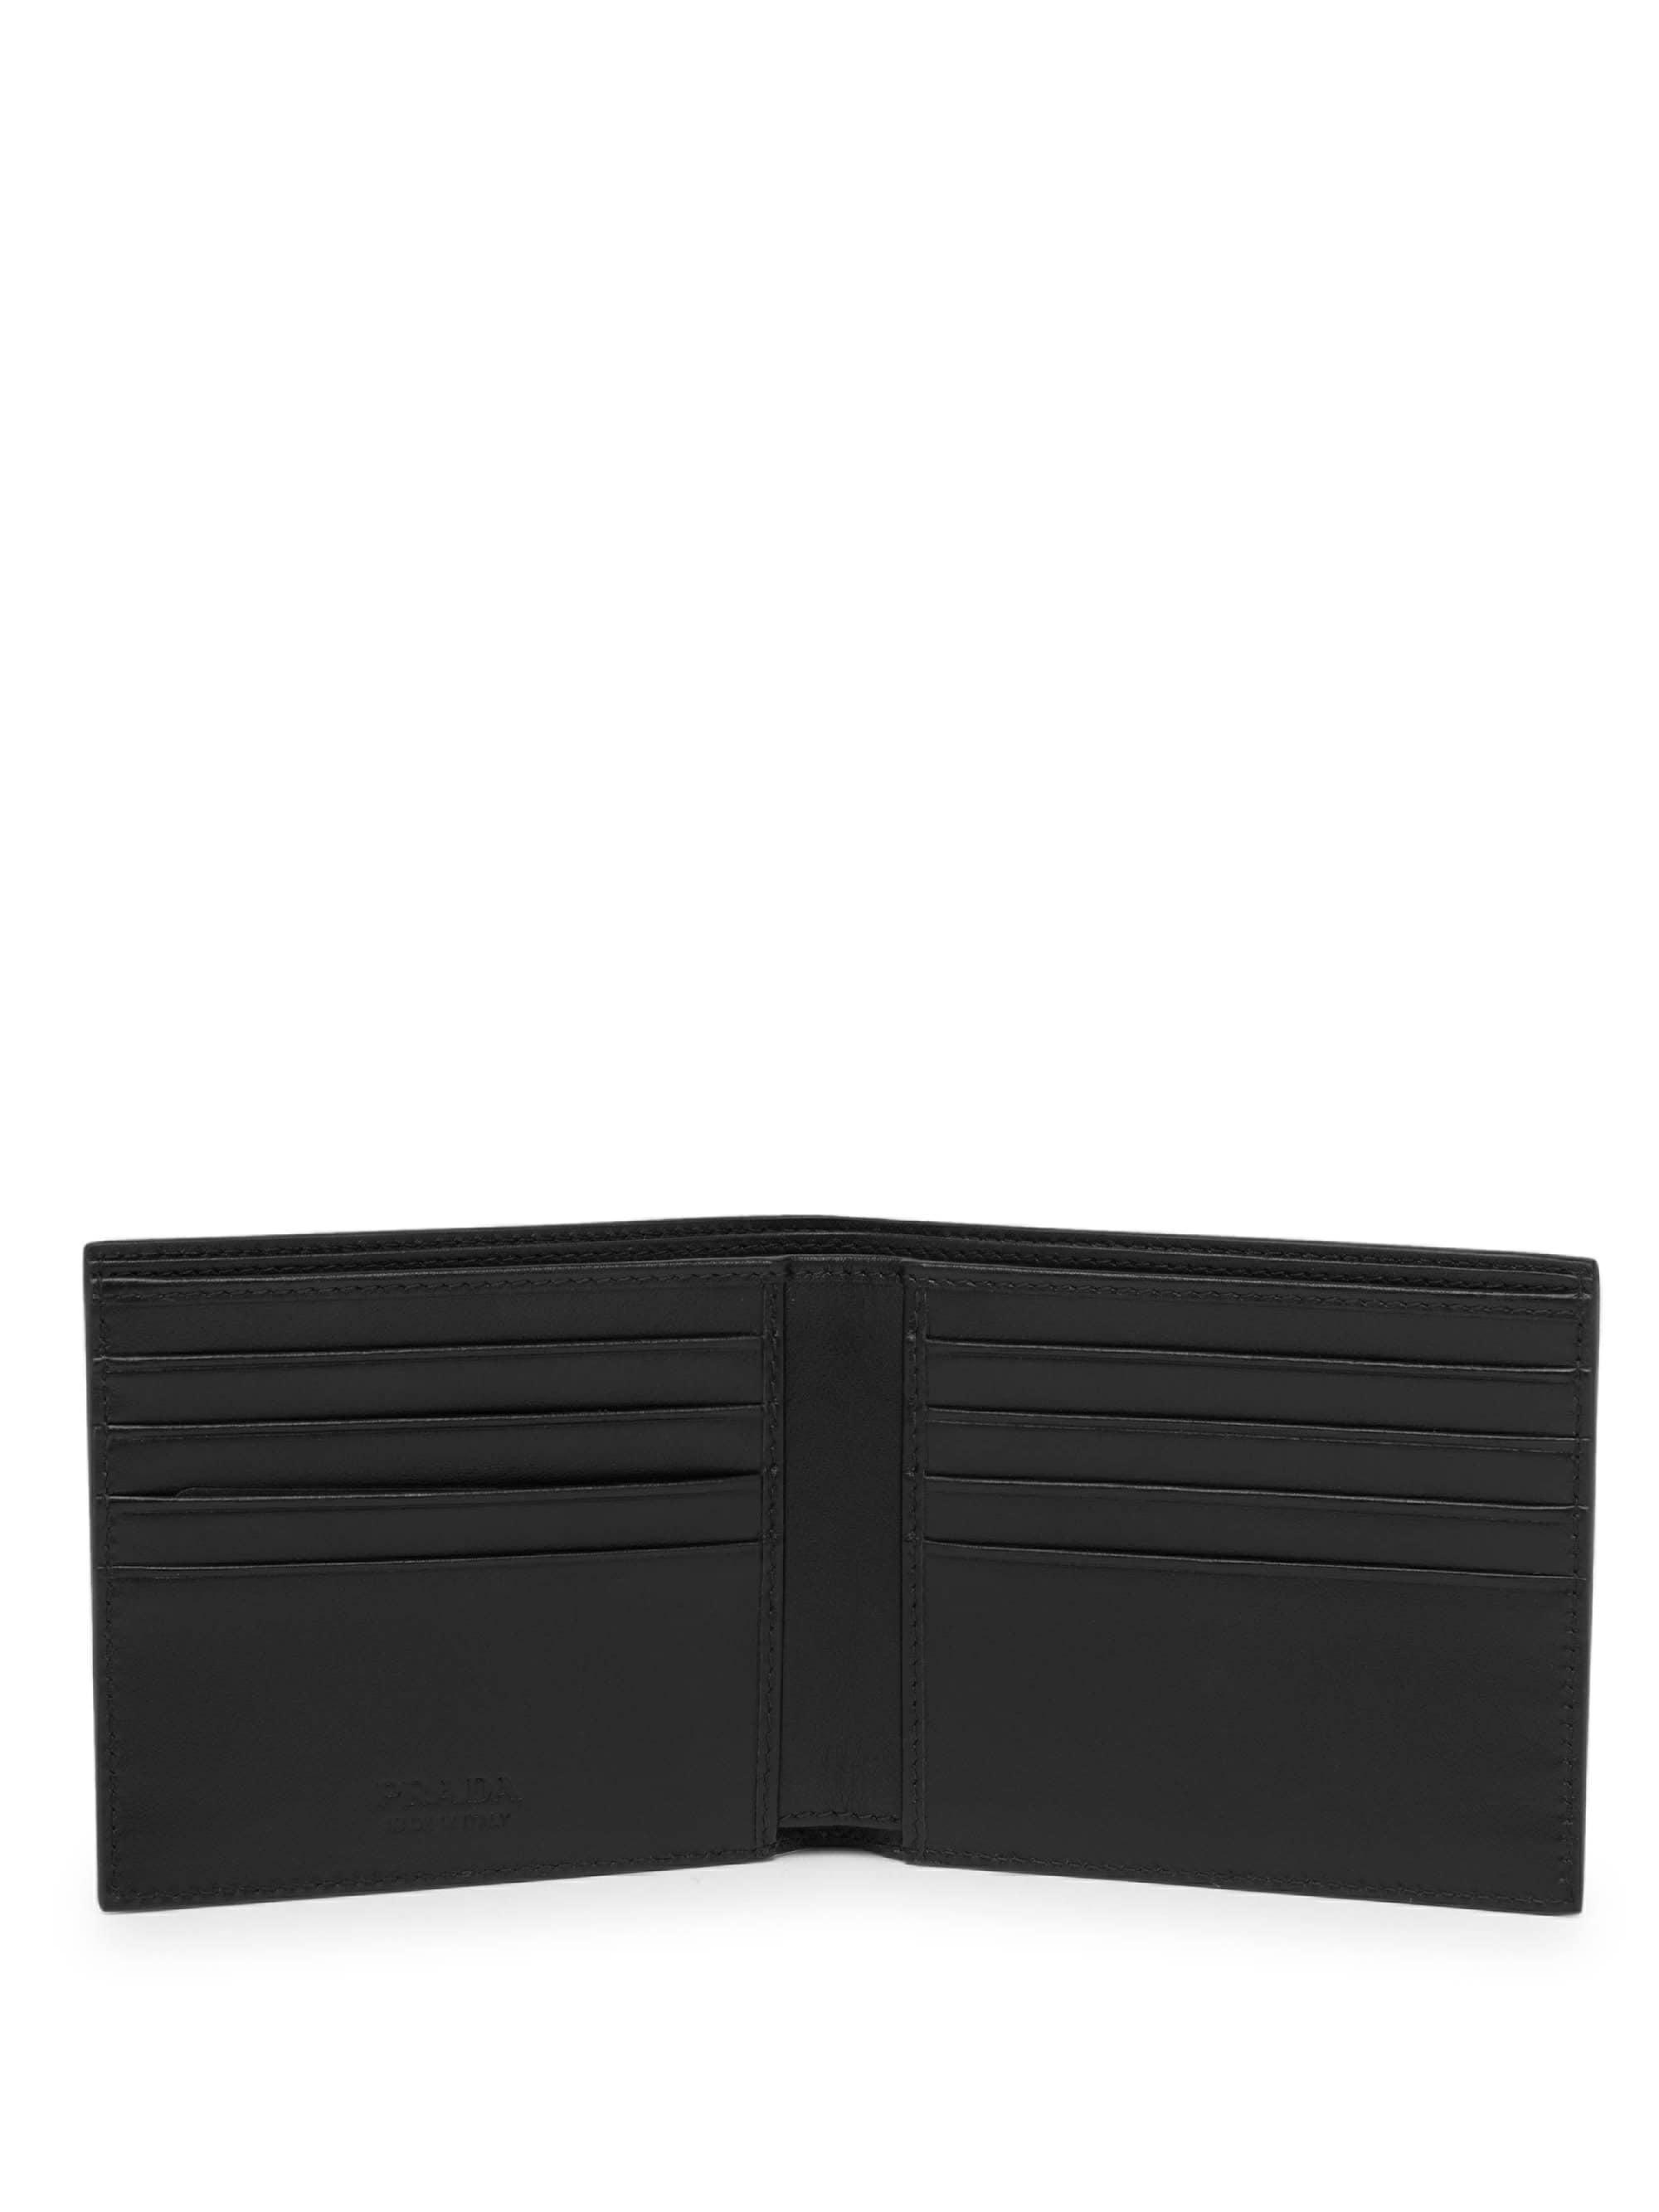 02145f49206 ... discount code for prada black saffiano leather billfold wallet for men  lyst. view fullscreen 0aad0